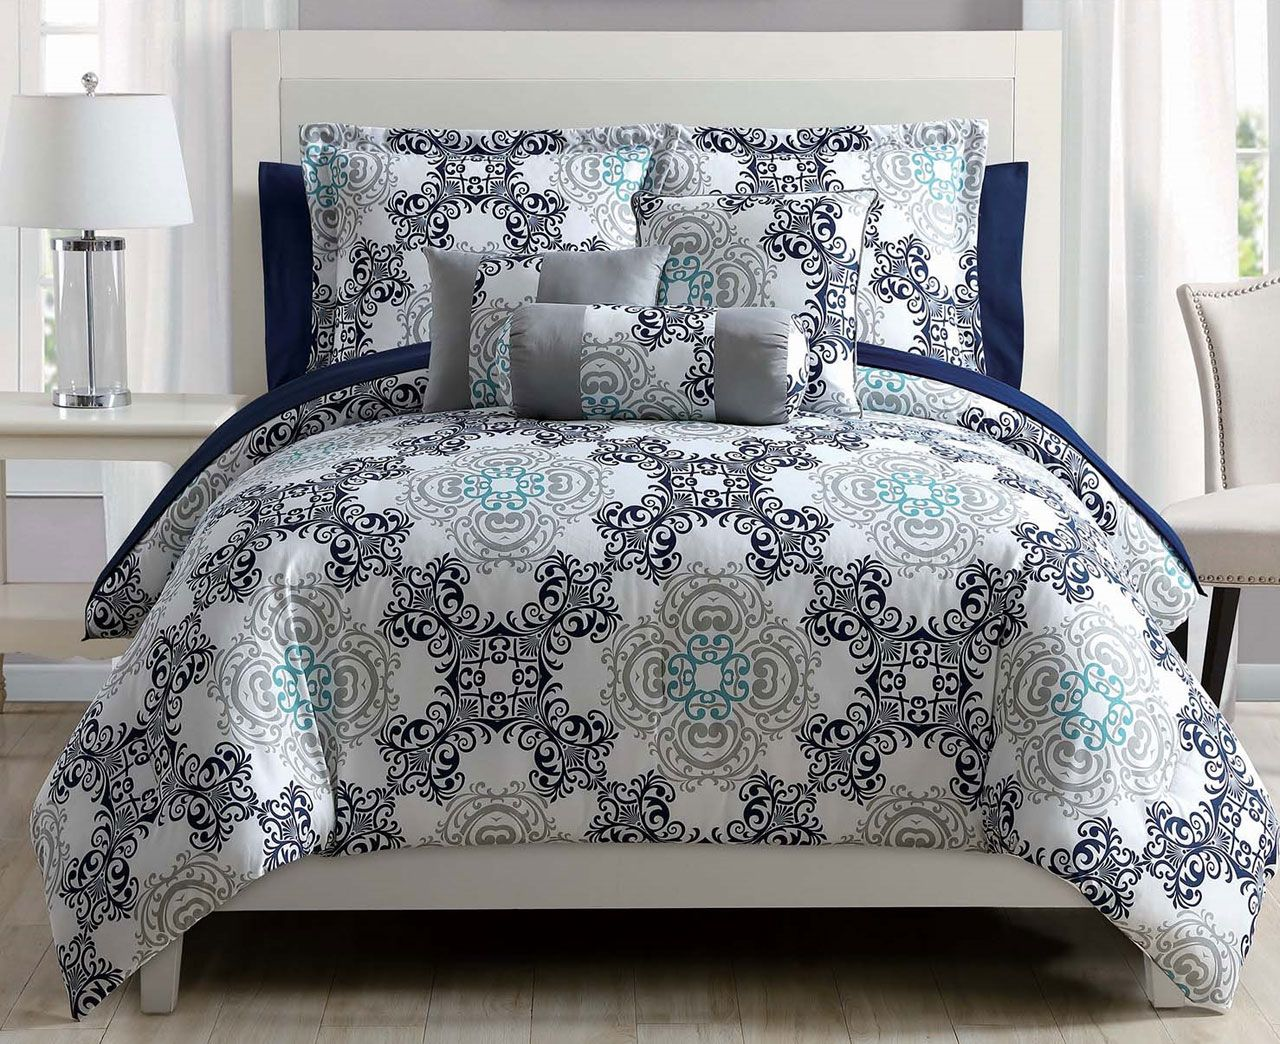 10 Piece Olena Gray/Gold/White Comforter Set w/Sheets - Walmart.com